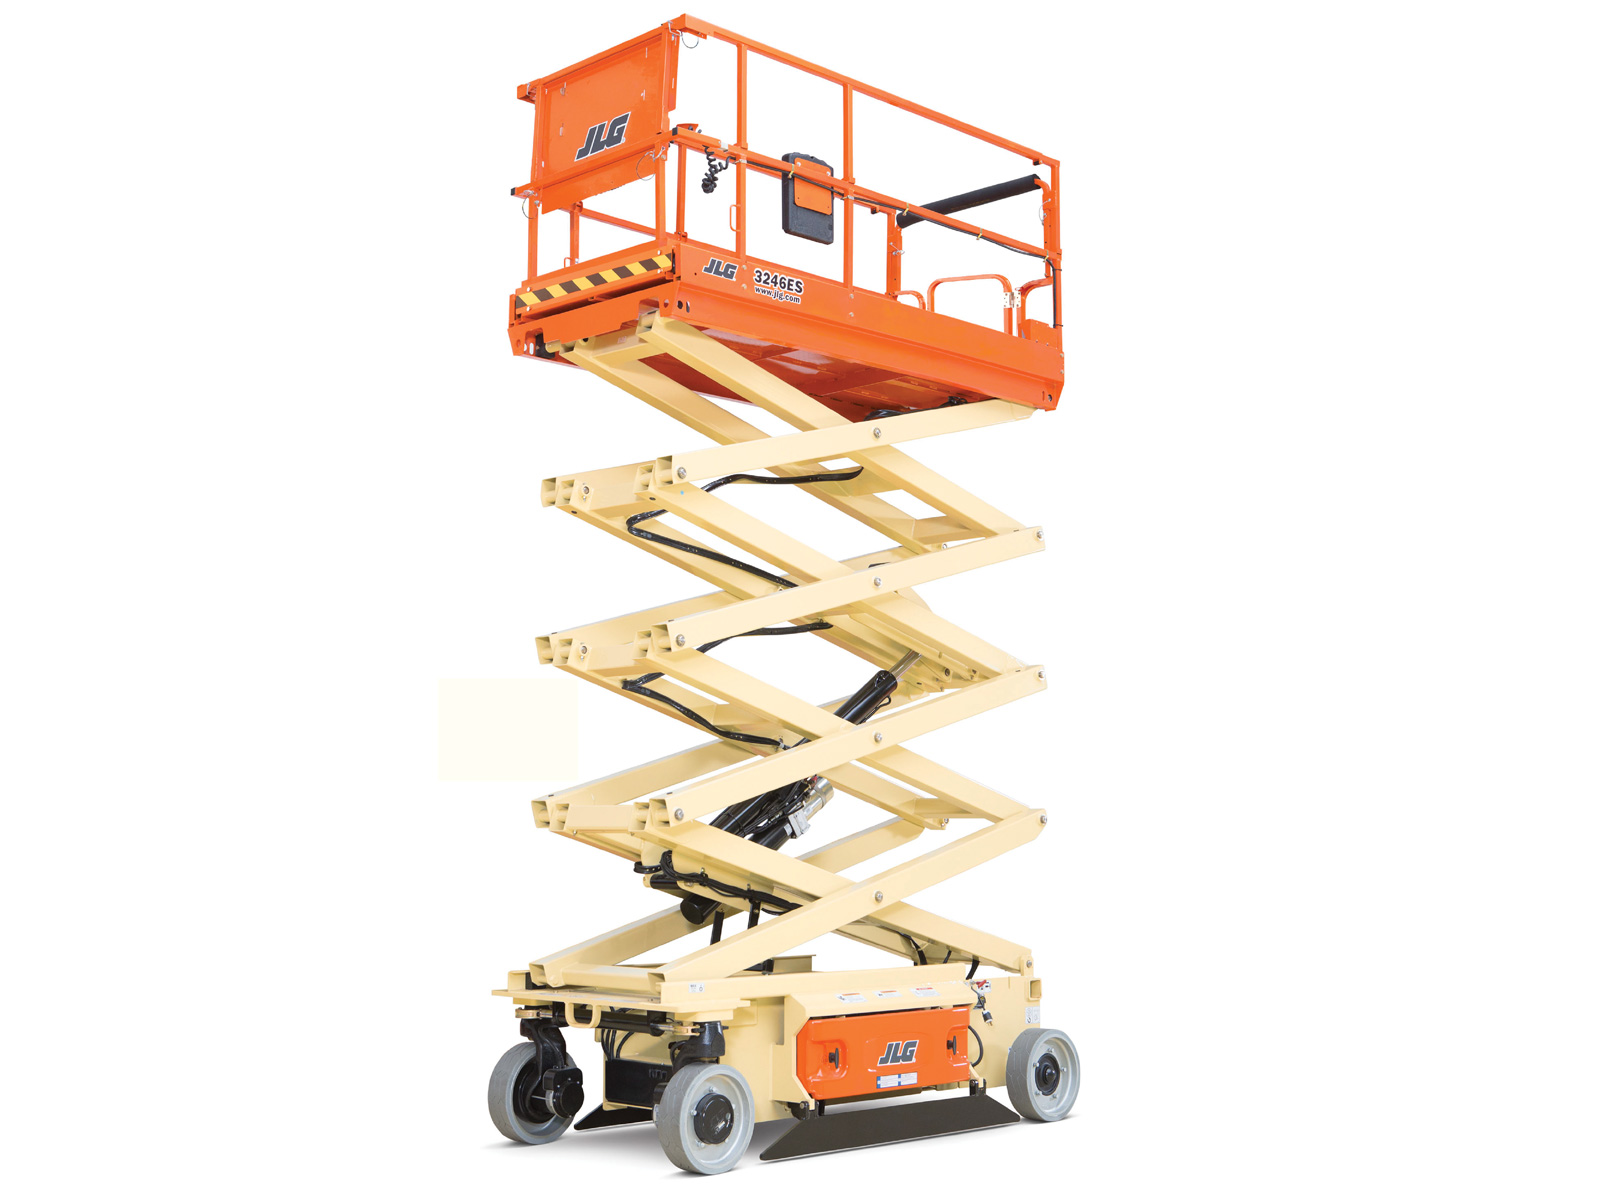 3246ES Electric Scissor Lift | JLG on jlg lift fuel tank, genie wiring diagram, jlg lift fan belt, komatsu wiring diagram, john deere wiring diagram, jlg lift spark plug,